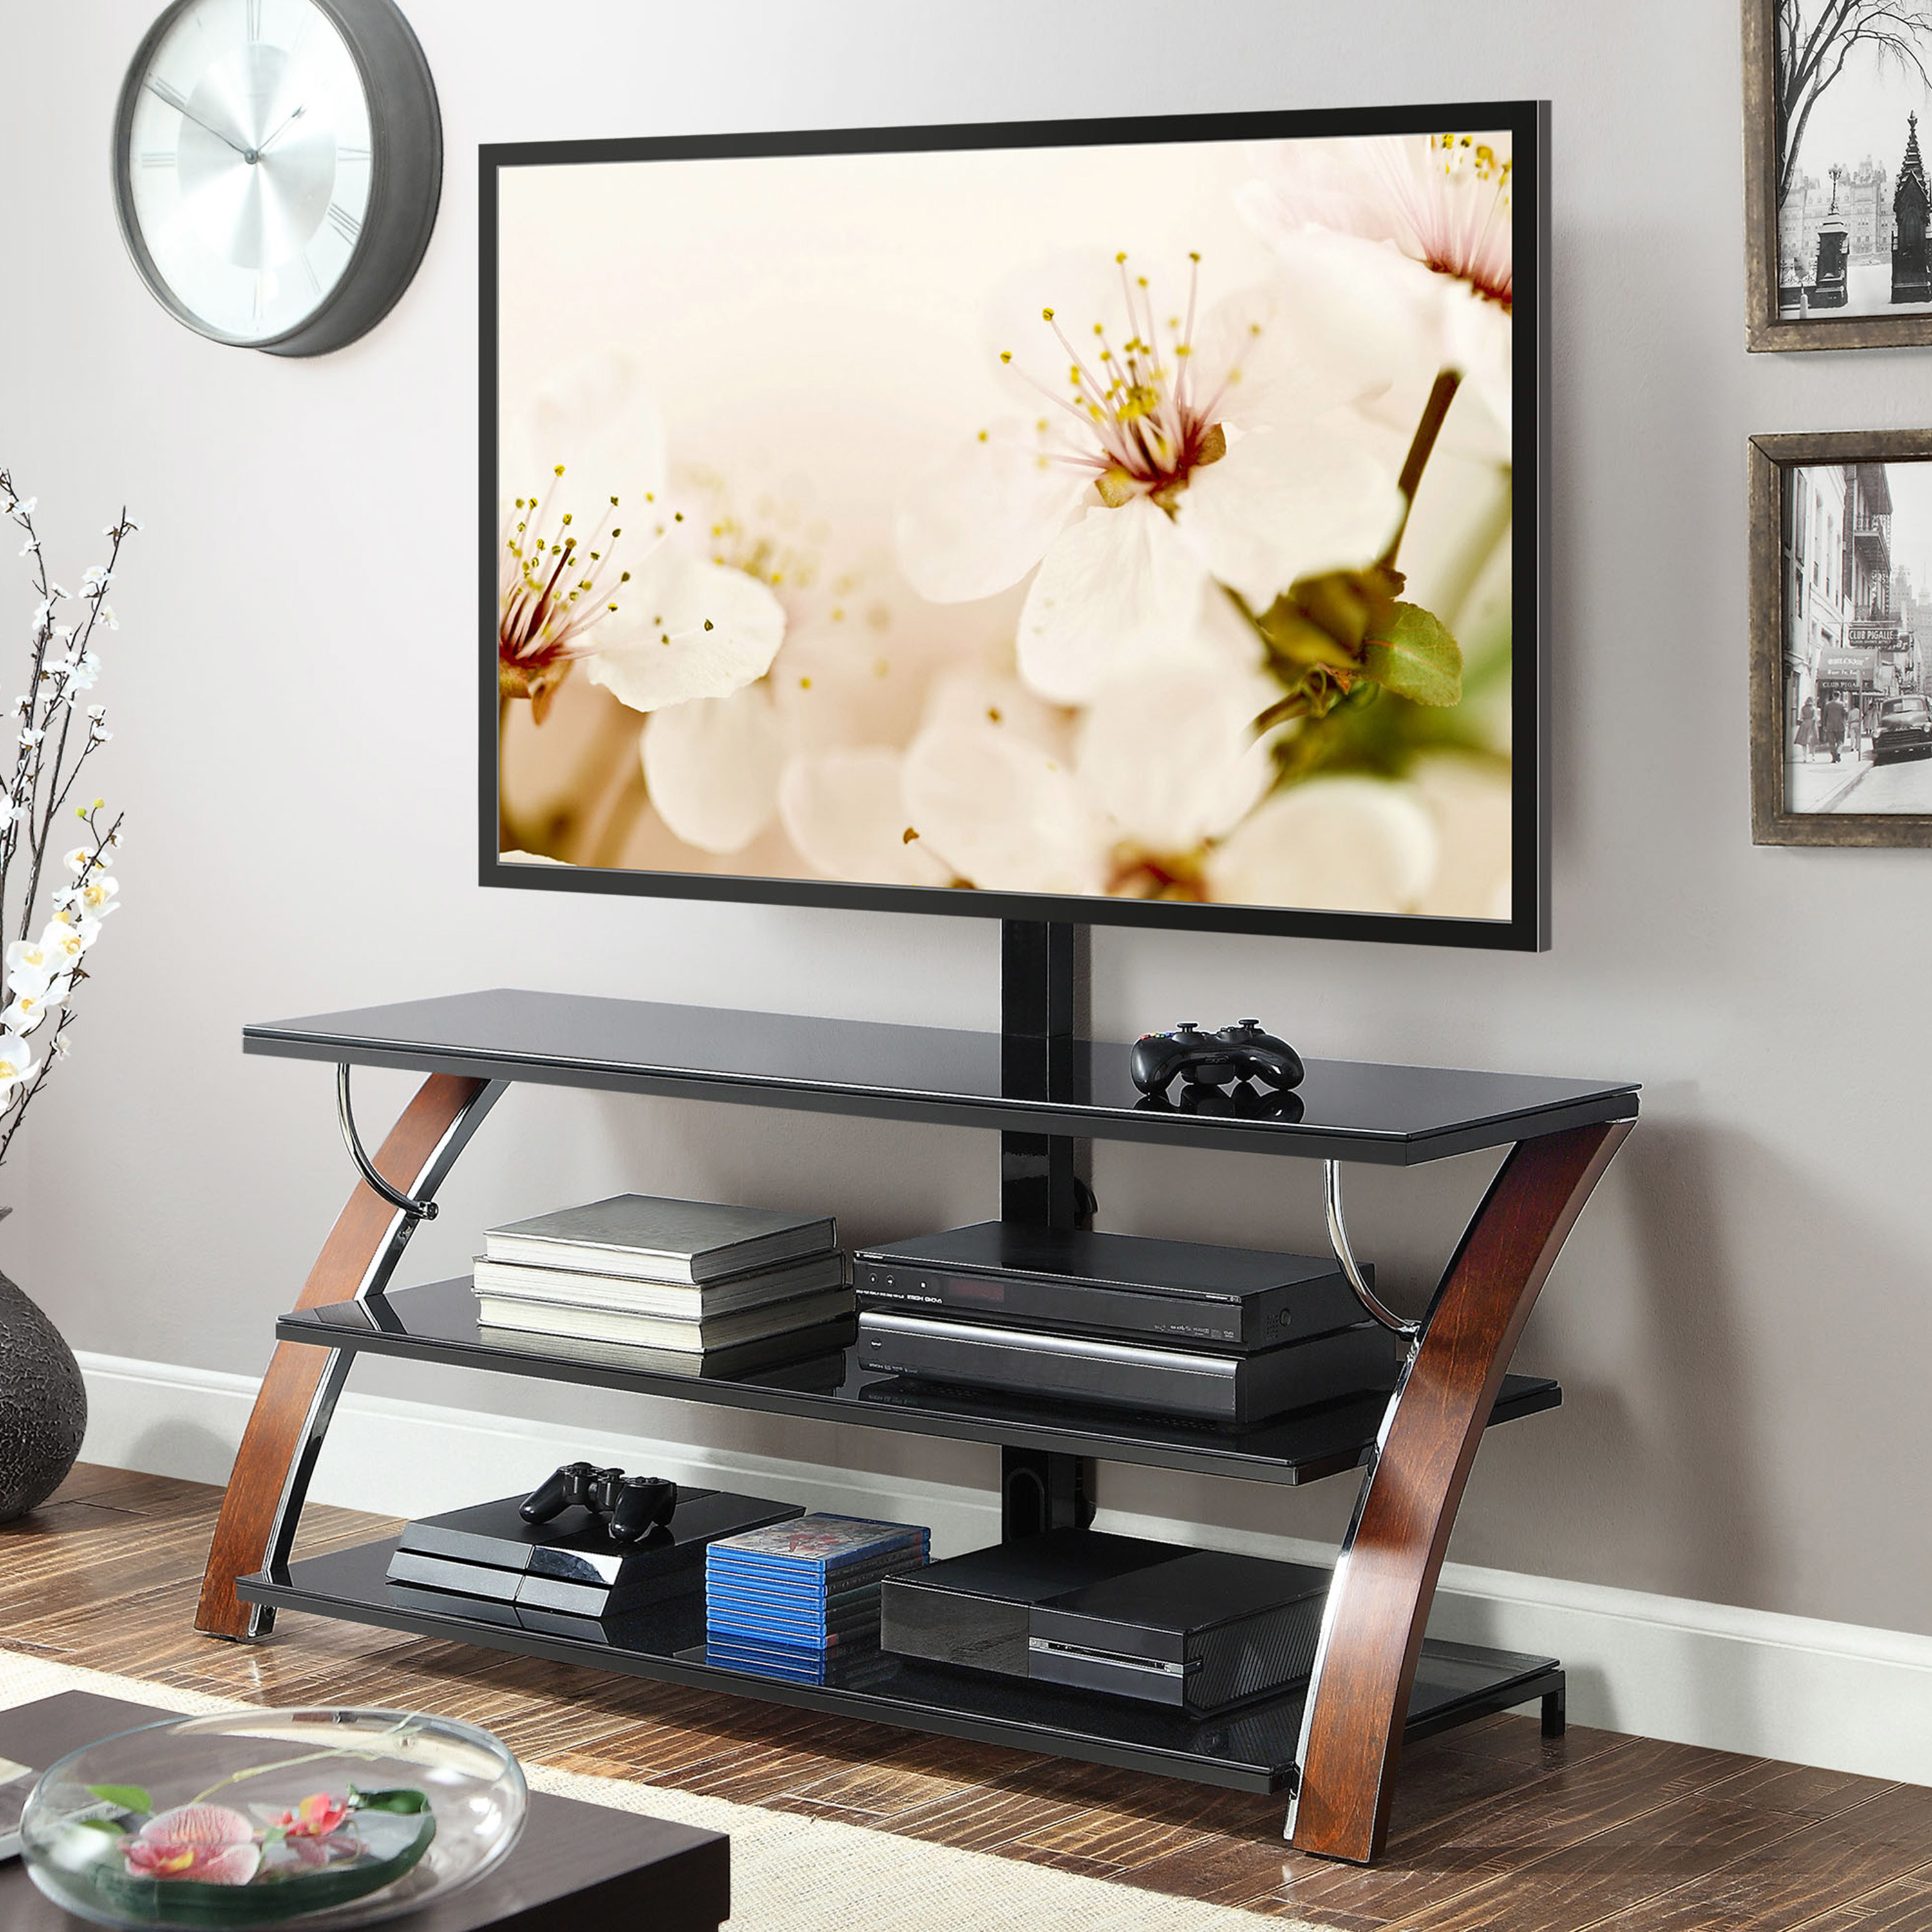 A Flat screen TV stand in cherry wood